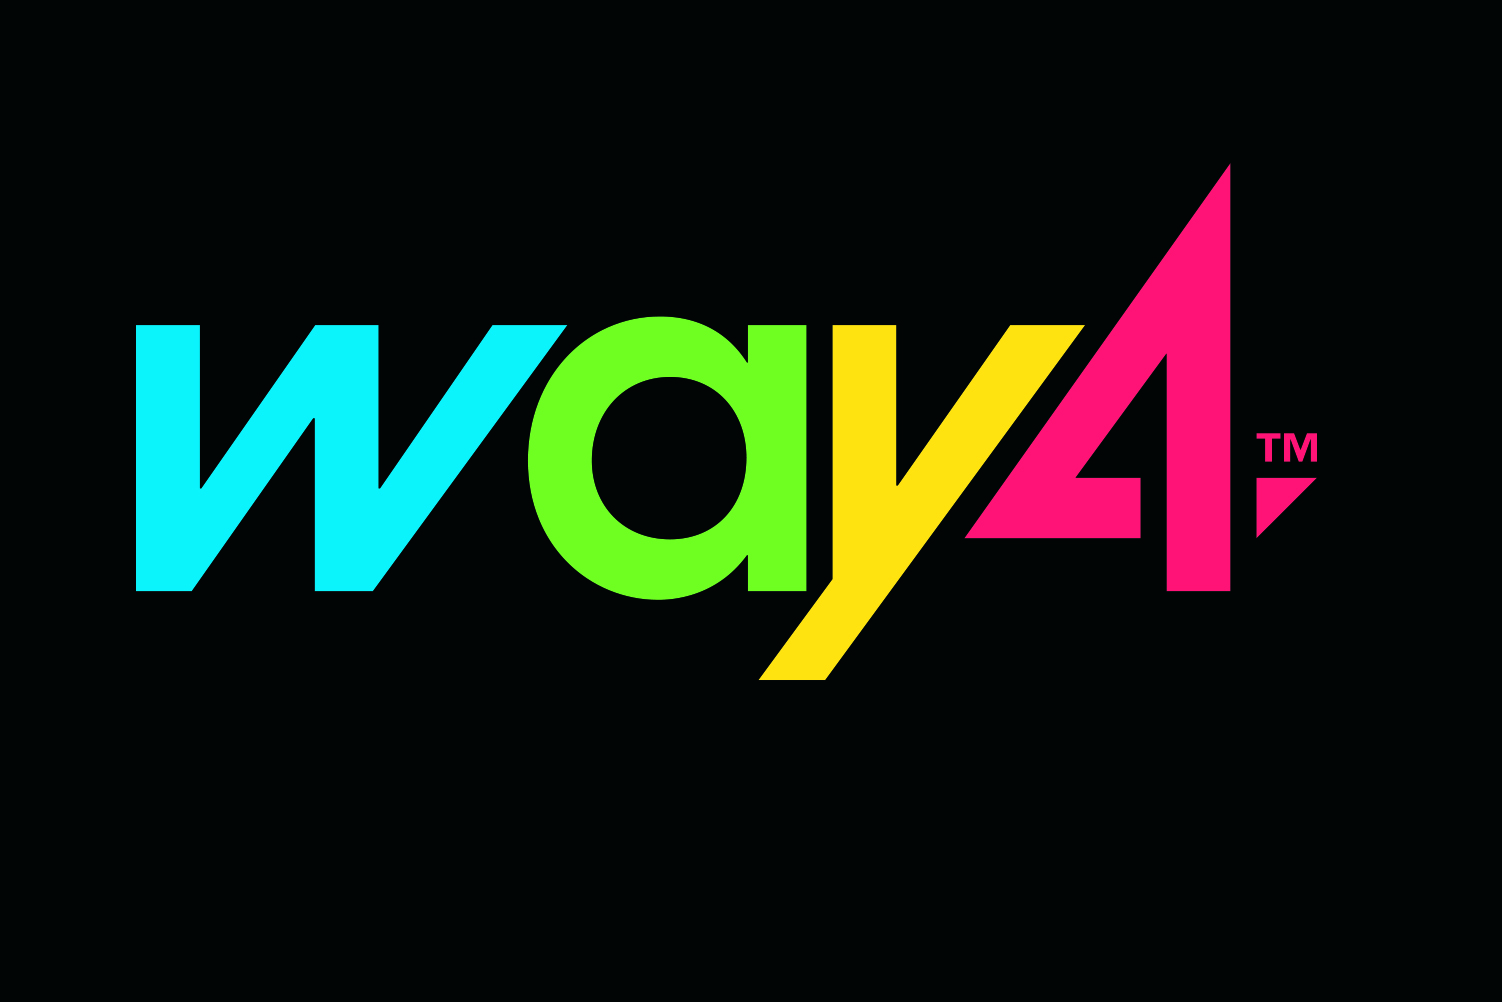 way4+openway_Logotypes